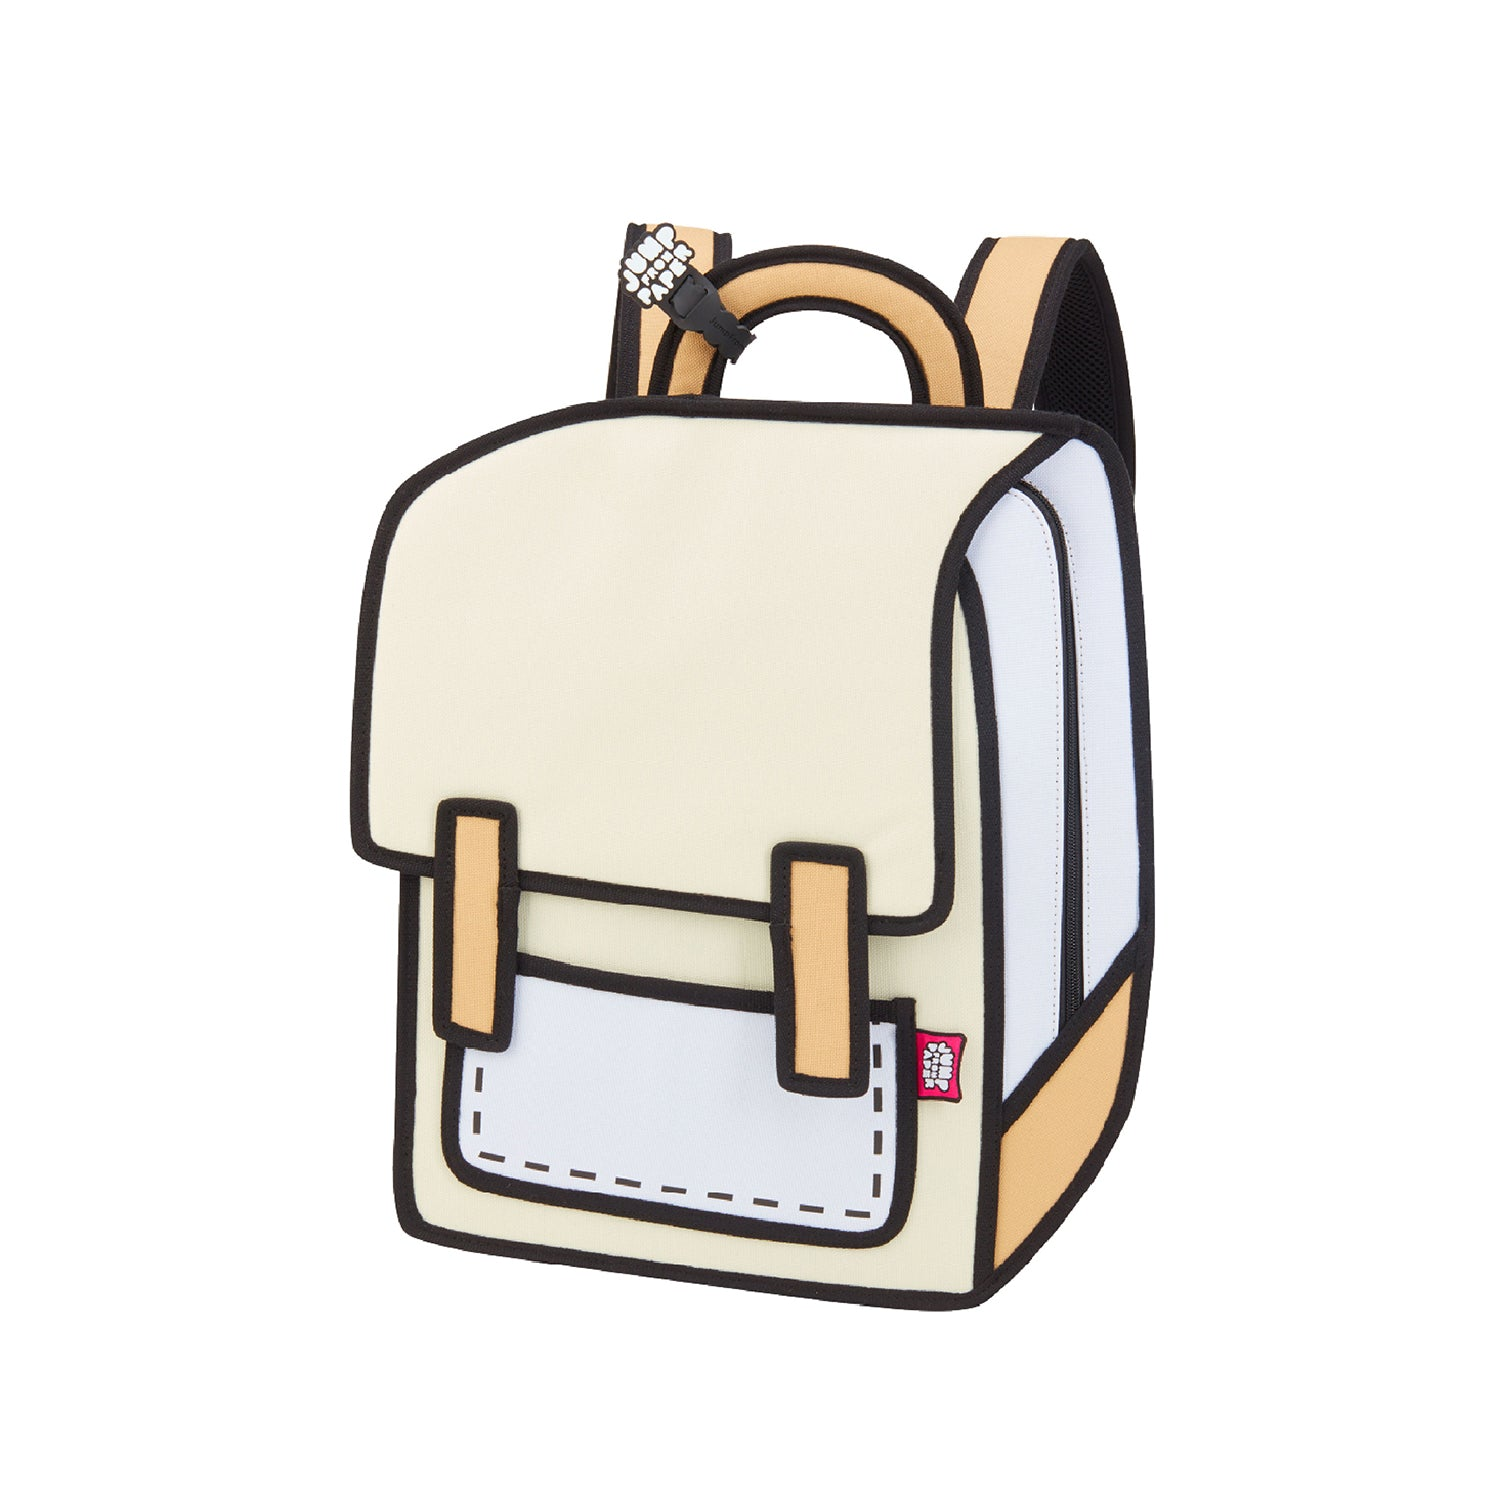 2d Bag Brown Rice Laptop Backpack Jumpfrompaper Cartoon Bag